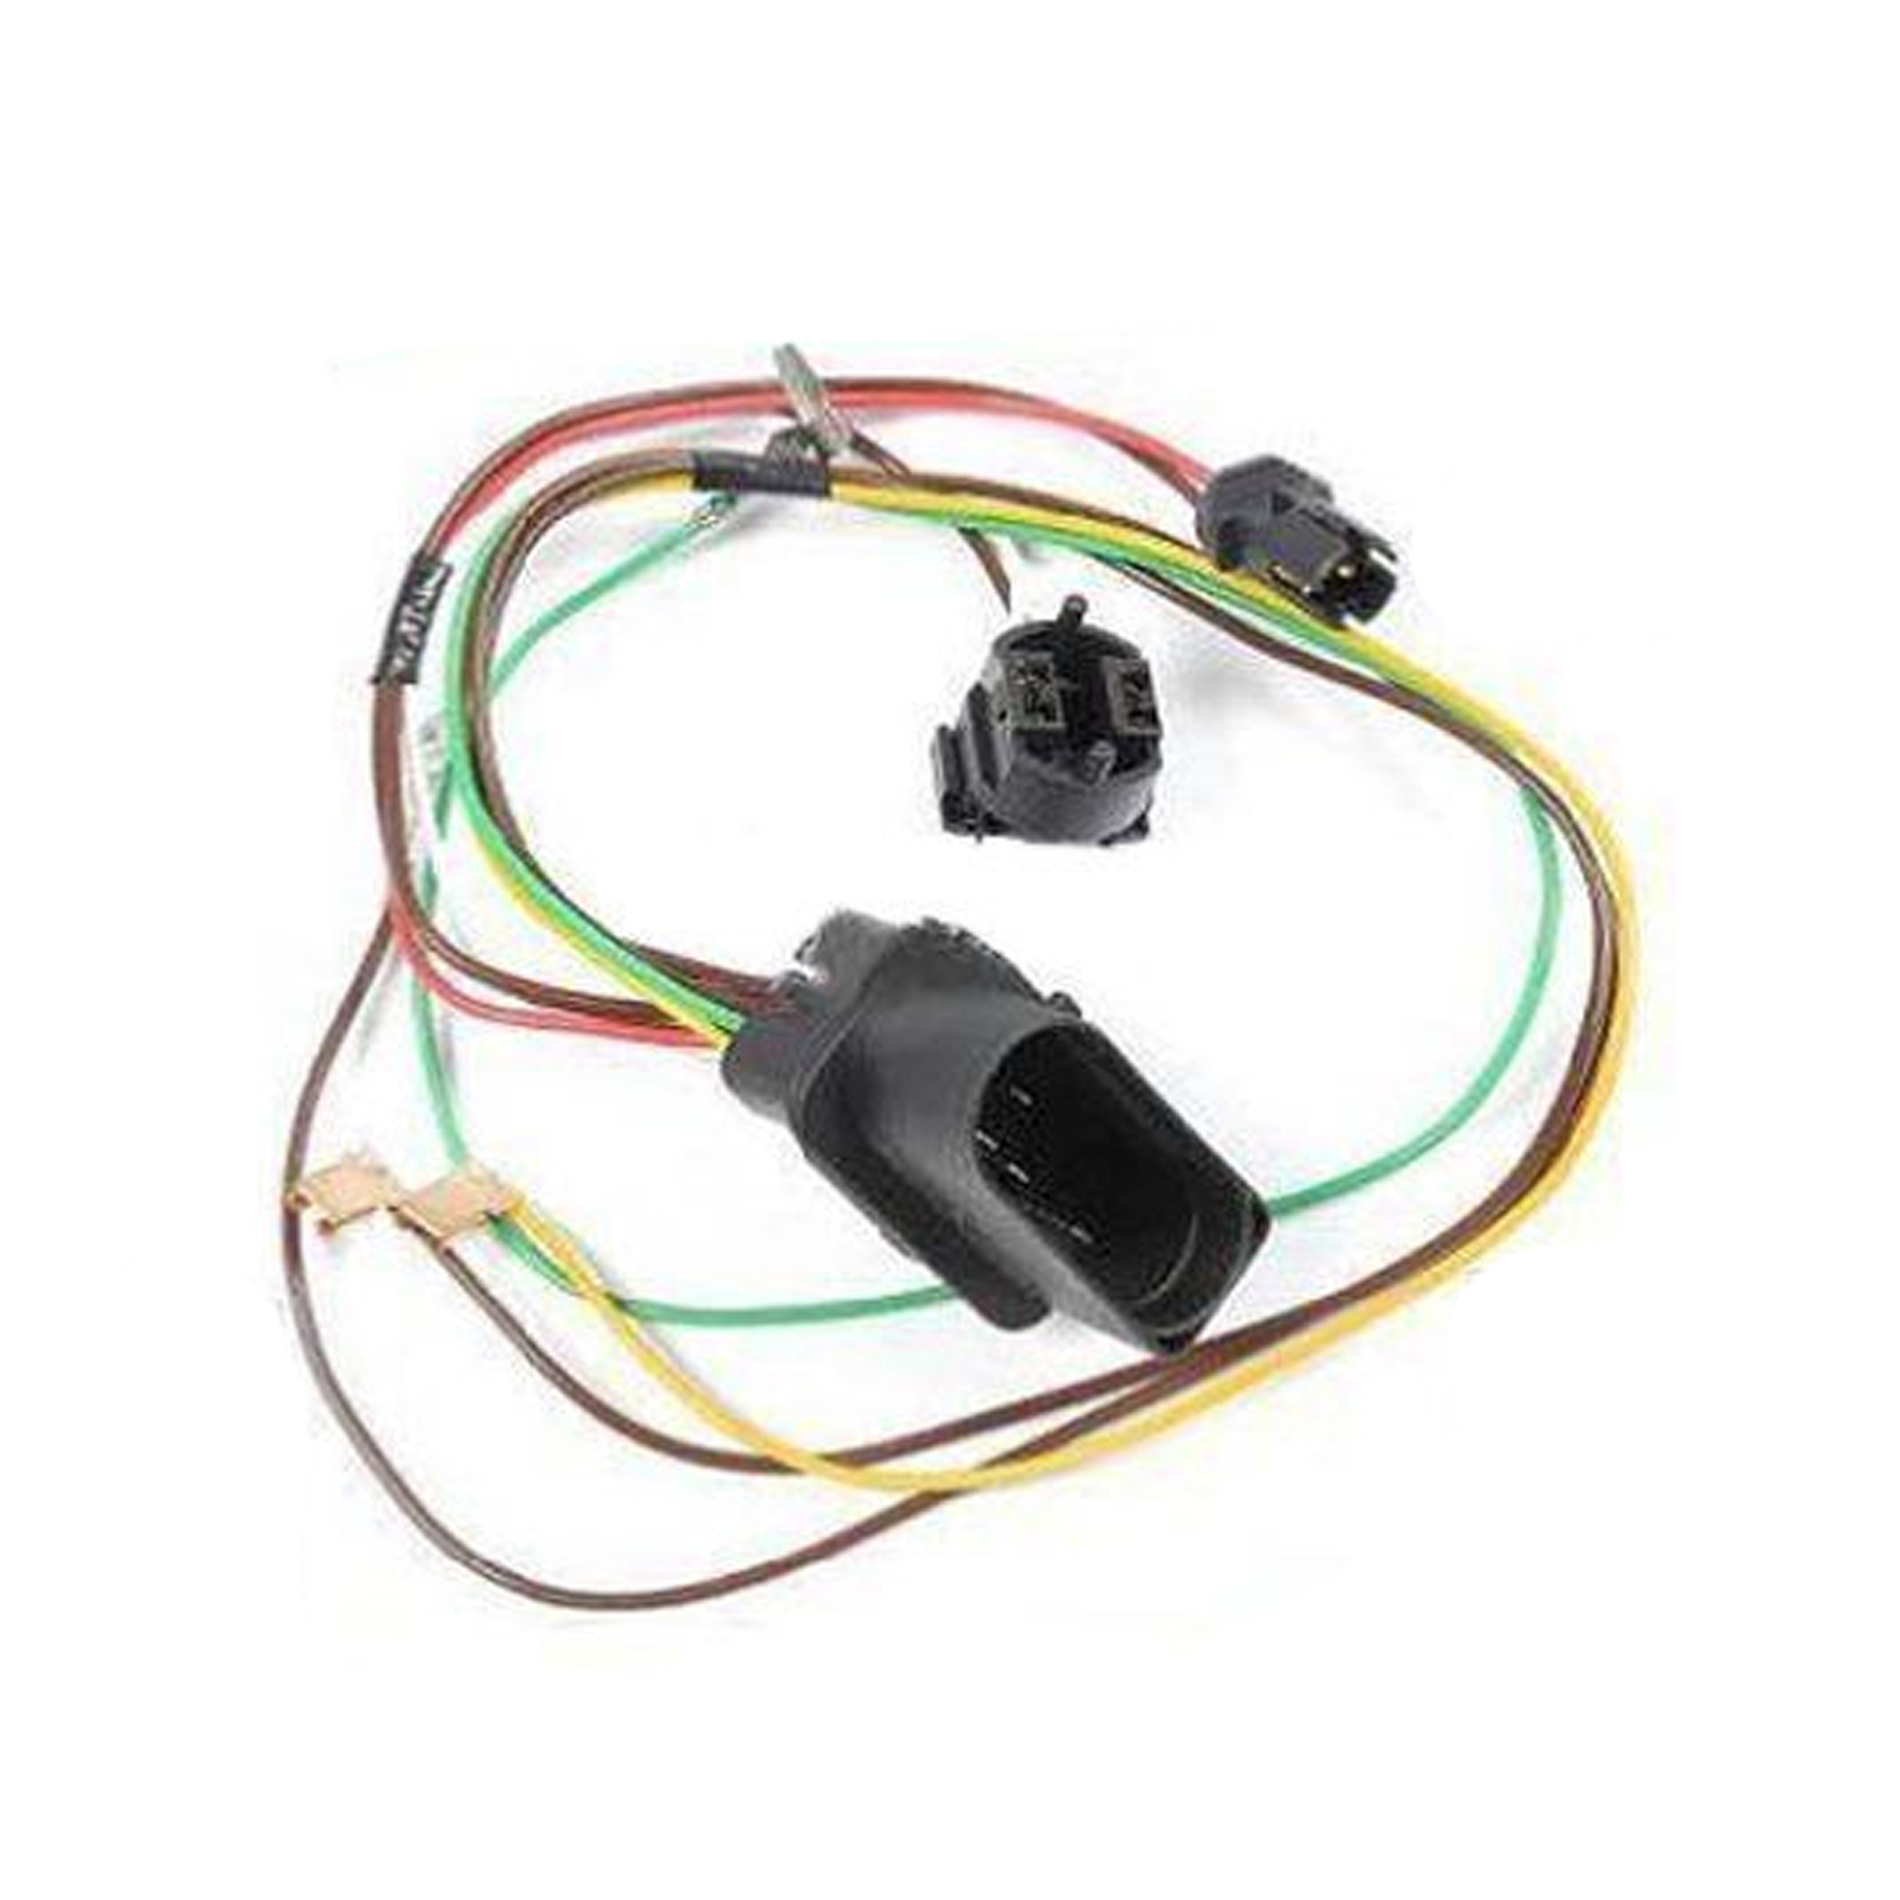 hight resolution of details about for brand new vw passat 3b0971671 headlight wire harness connector repair kit